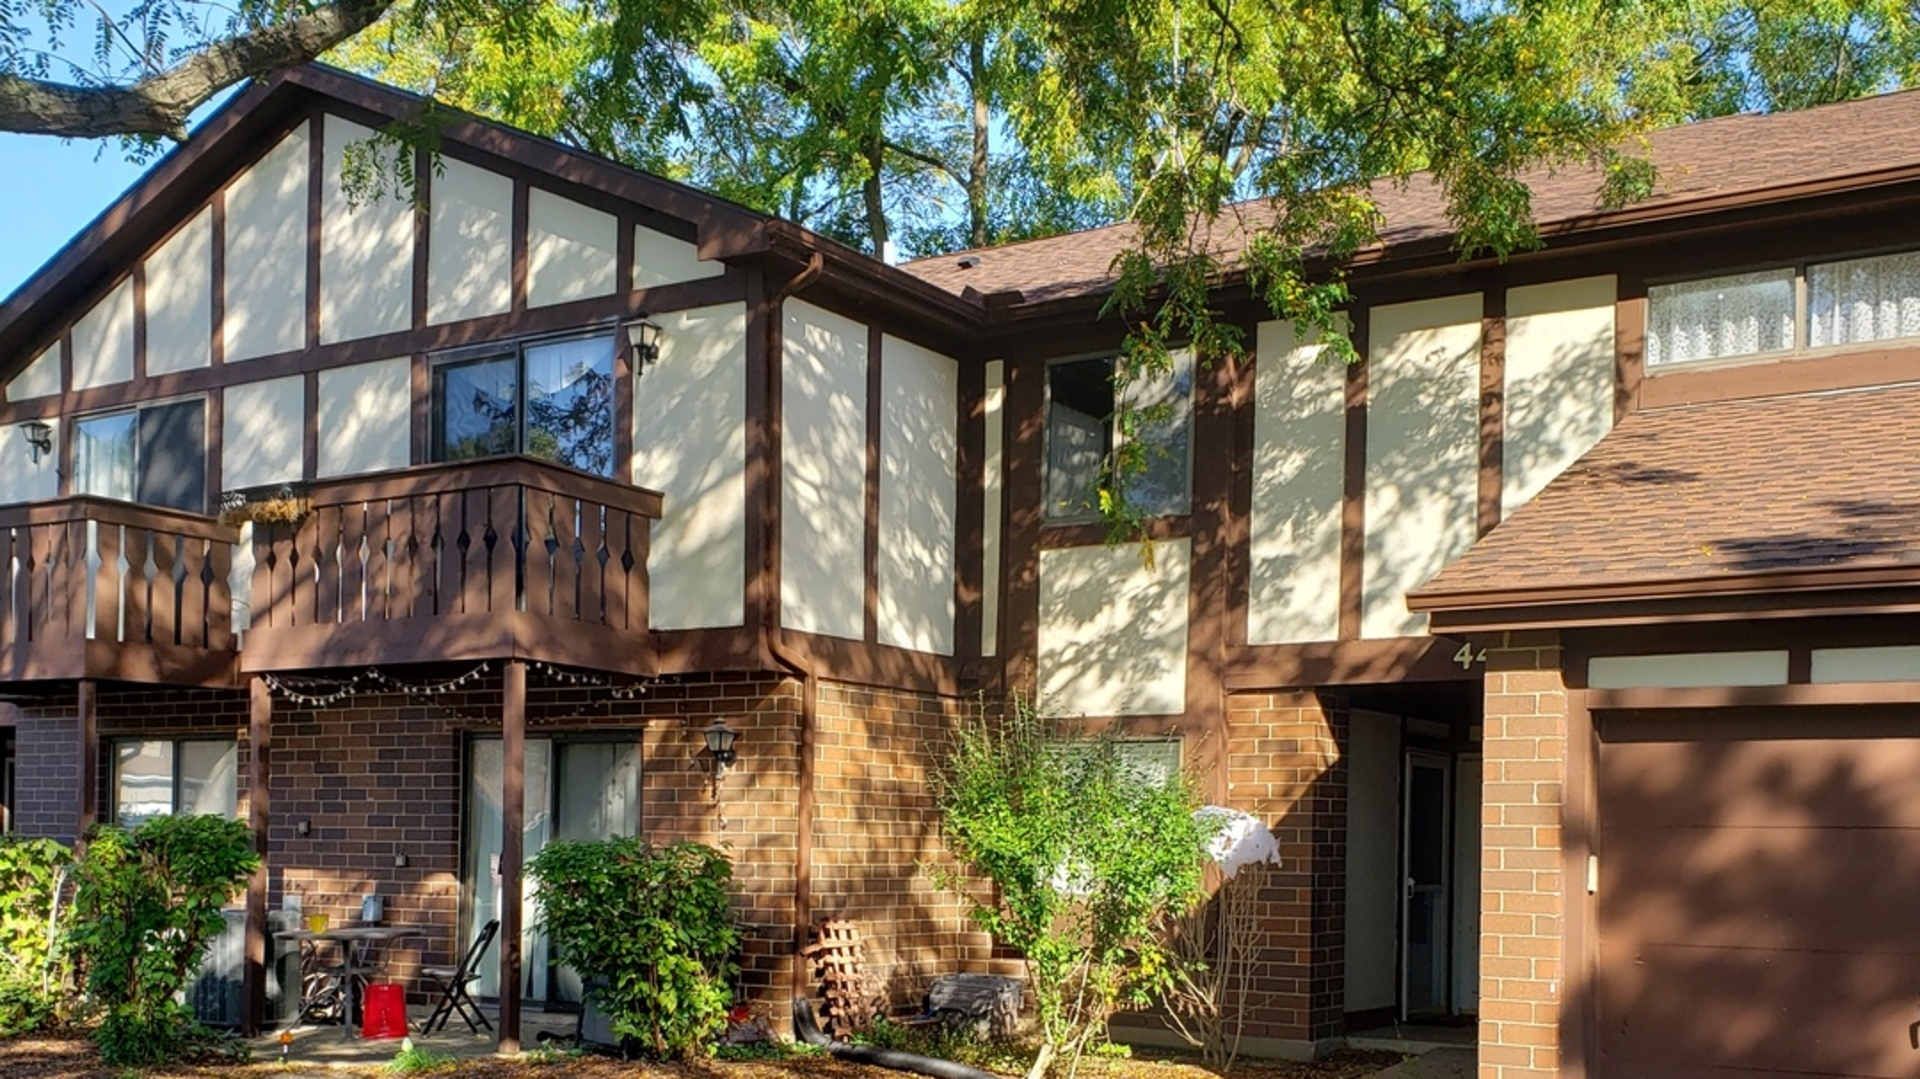 Photo for 440 Brandy Drive, Unit Number C, Crystal Lake, IL 60014 (MLS # 10544963)